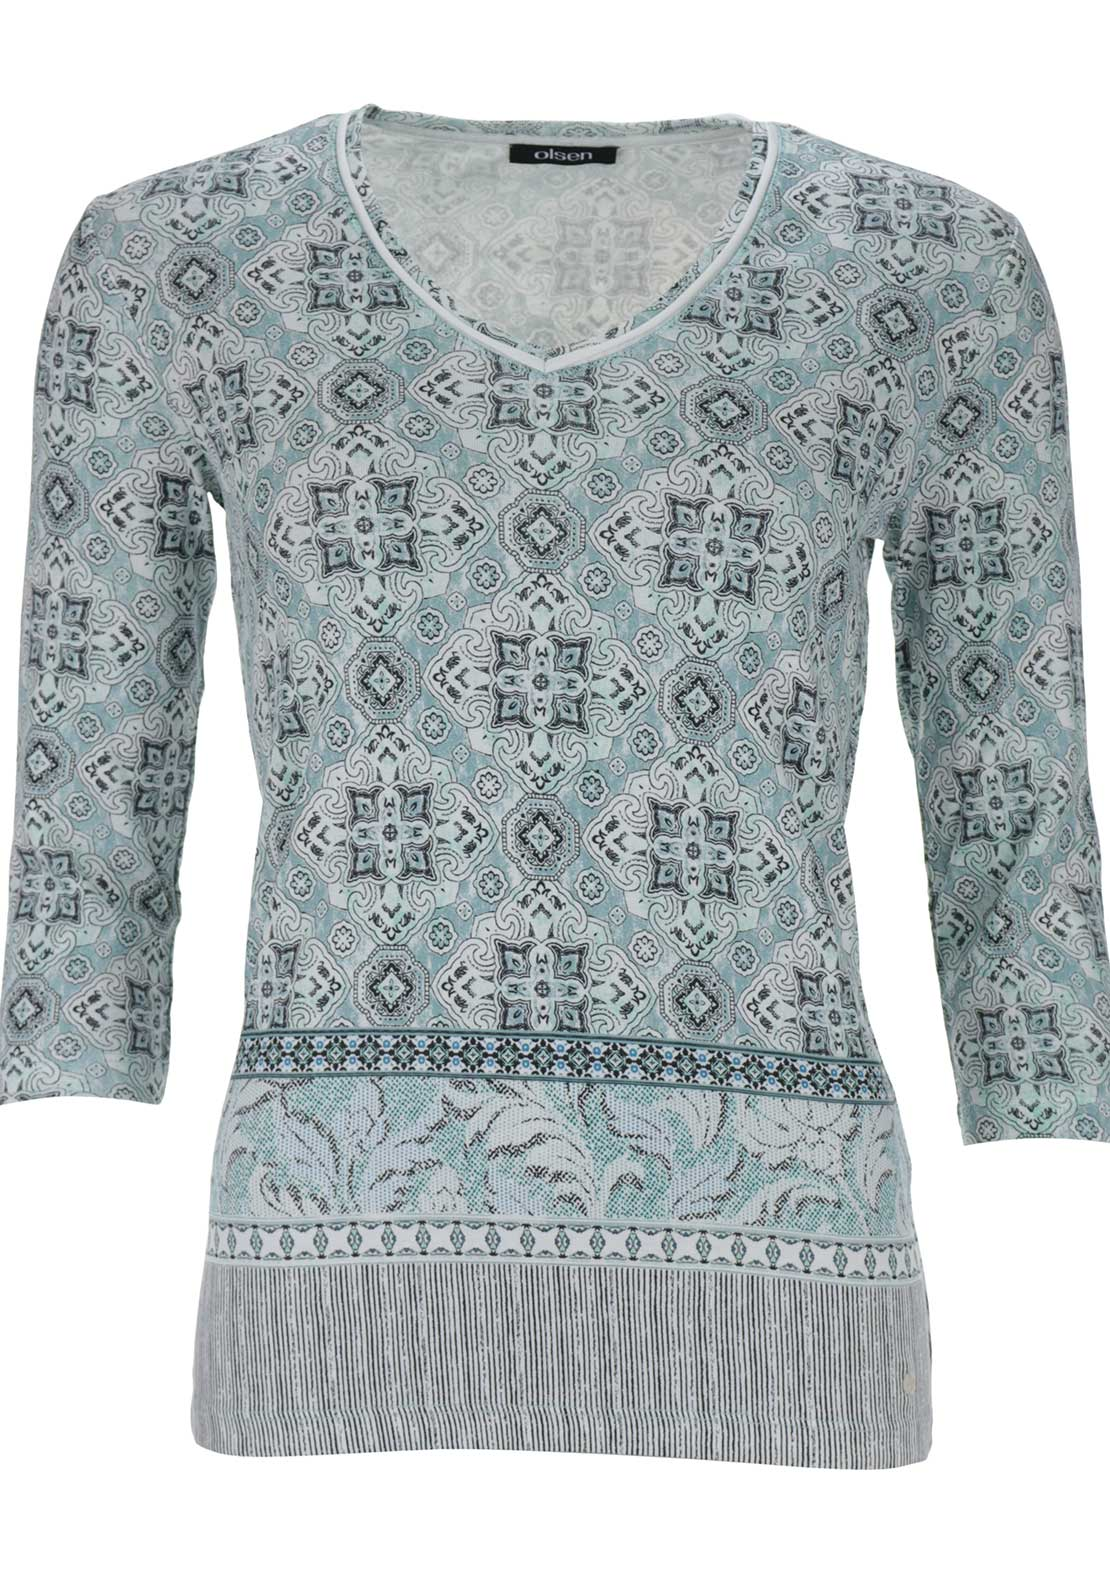 Olsen Vintage Print Cropped Sleeve Top, Mint Green